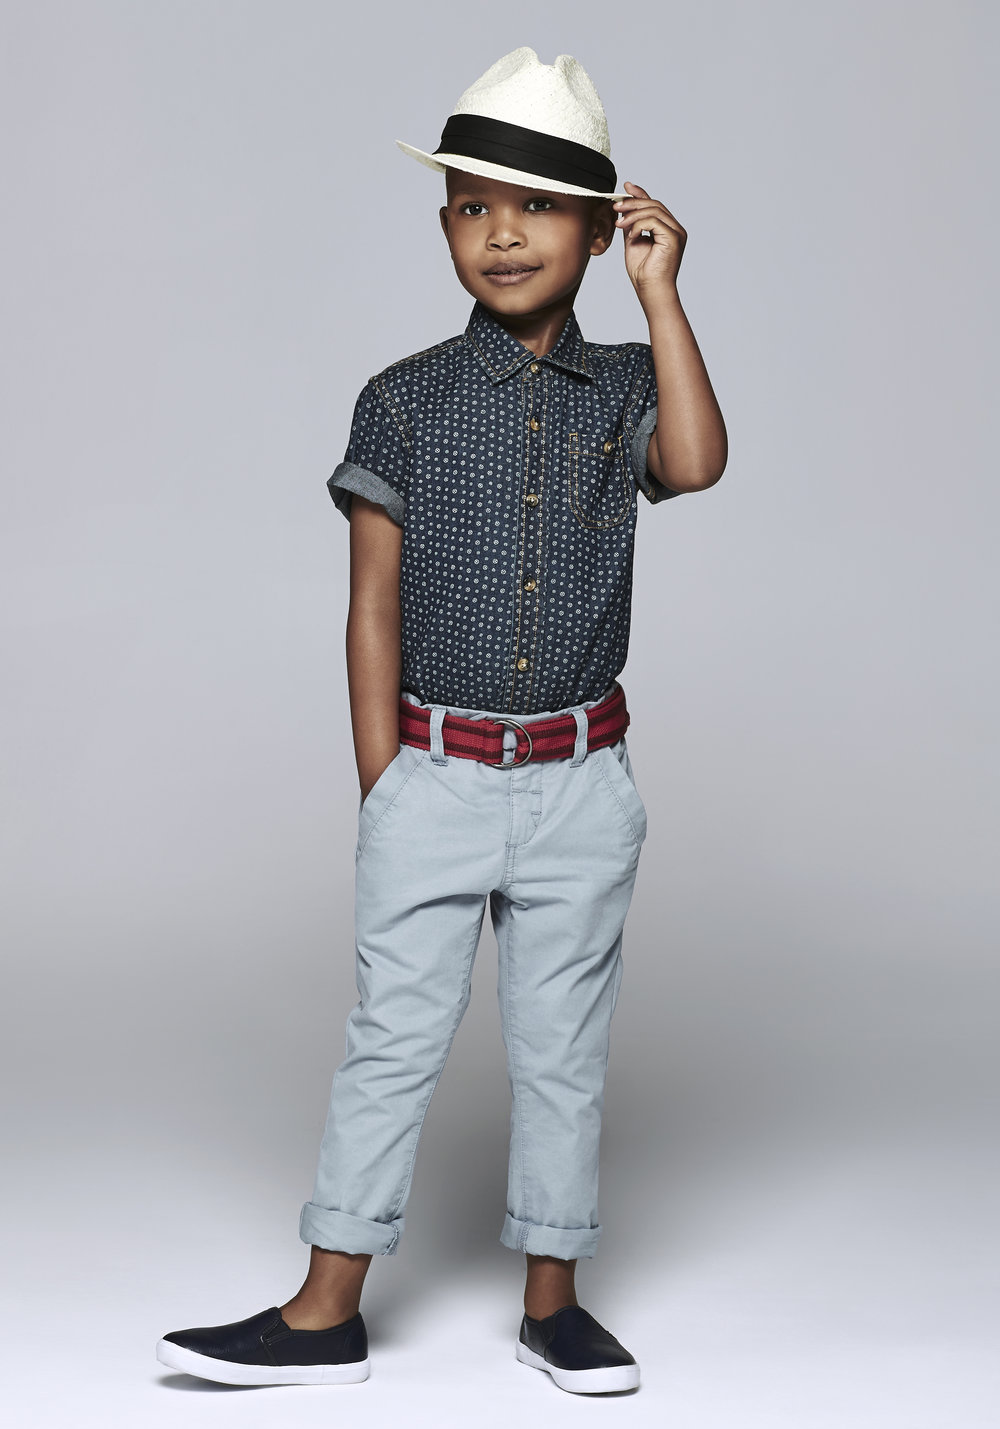 WW_KIDS_FASHION_0106.jpg